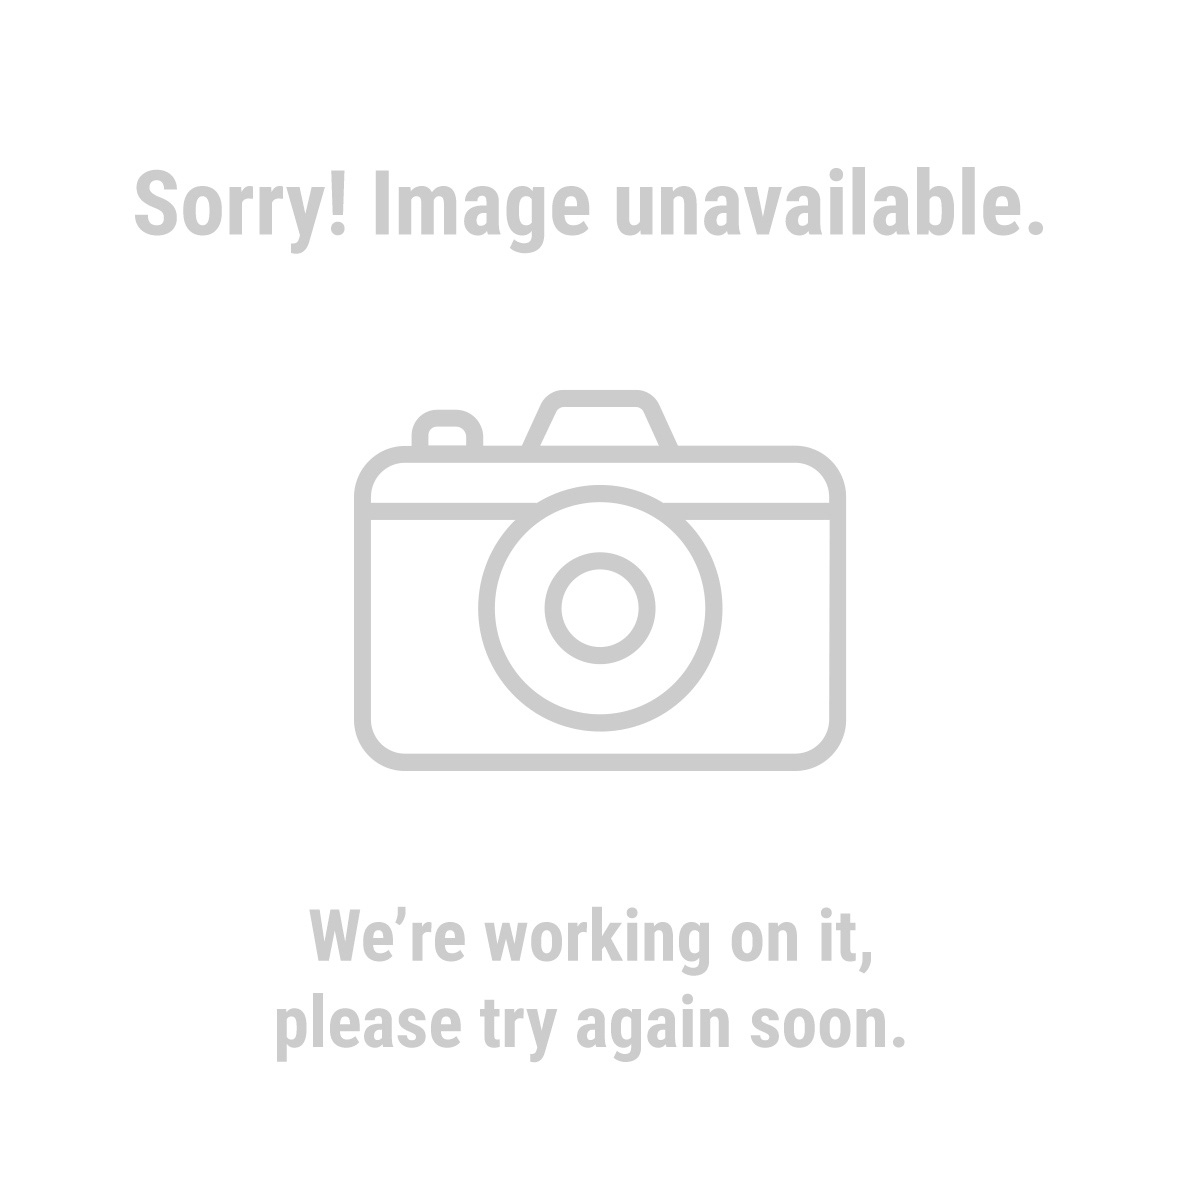 Pittsburgh 96733 26 Piece Ratchet Screwdriver Set